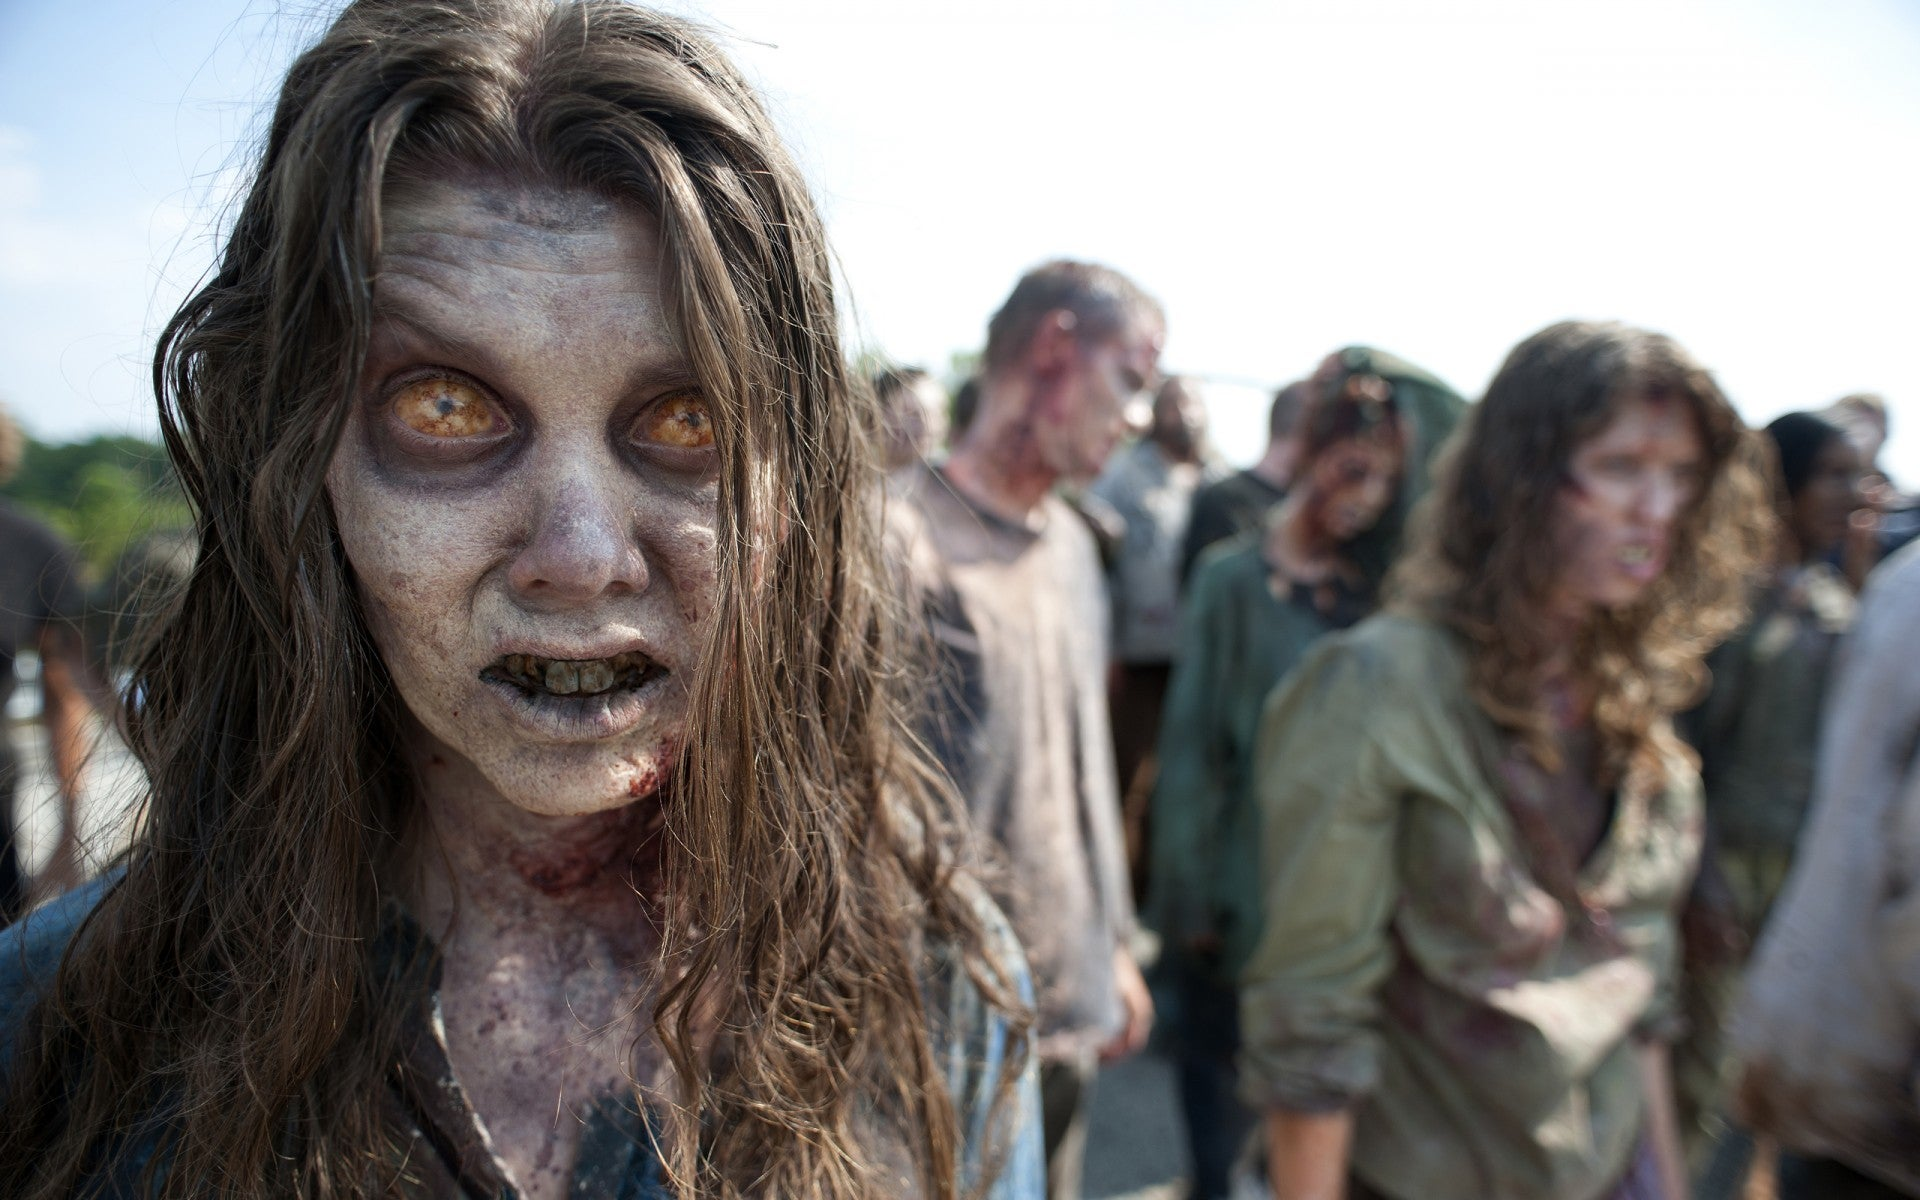 10 Practical Tips for Surviving the Zombie Apocalypse